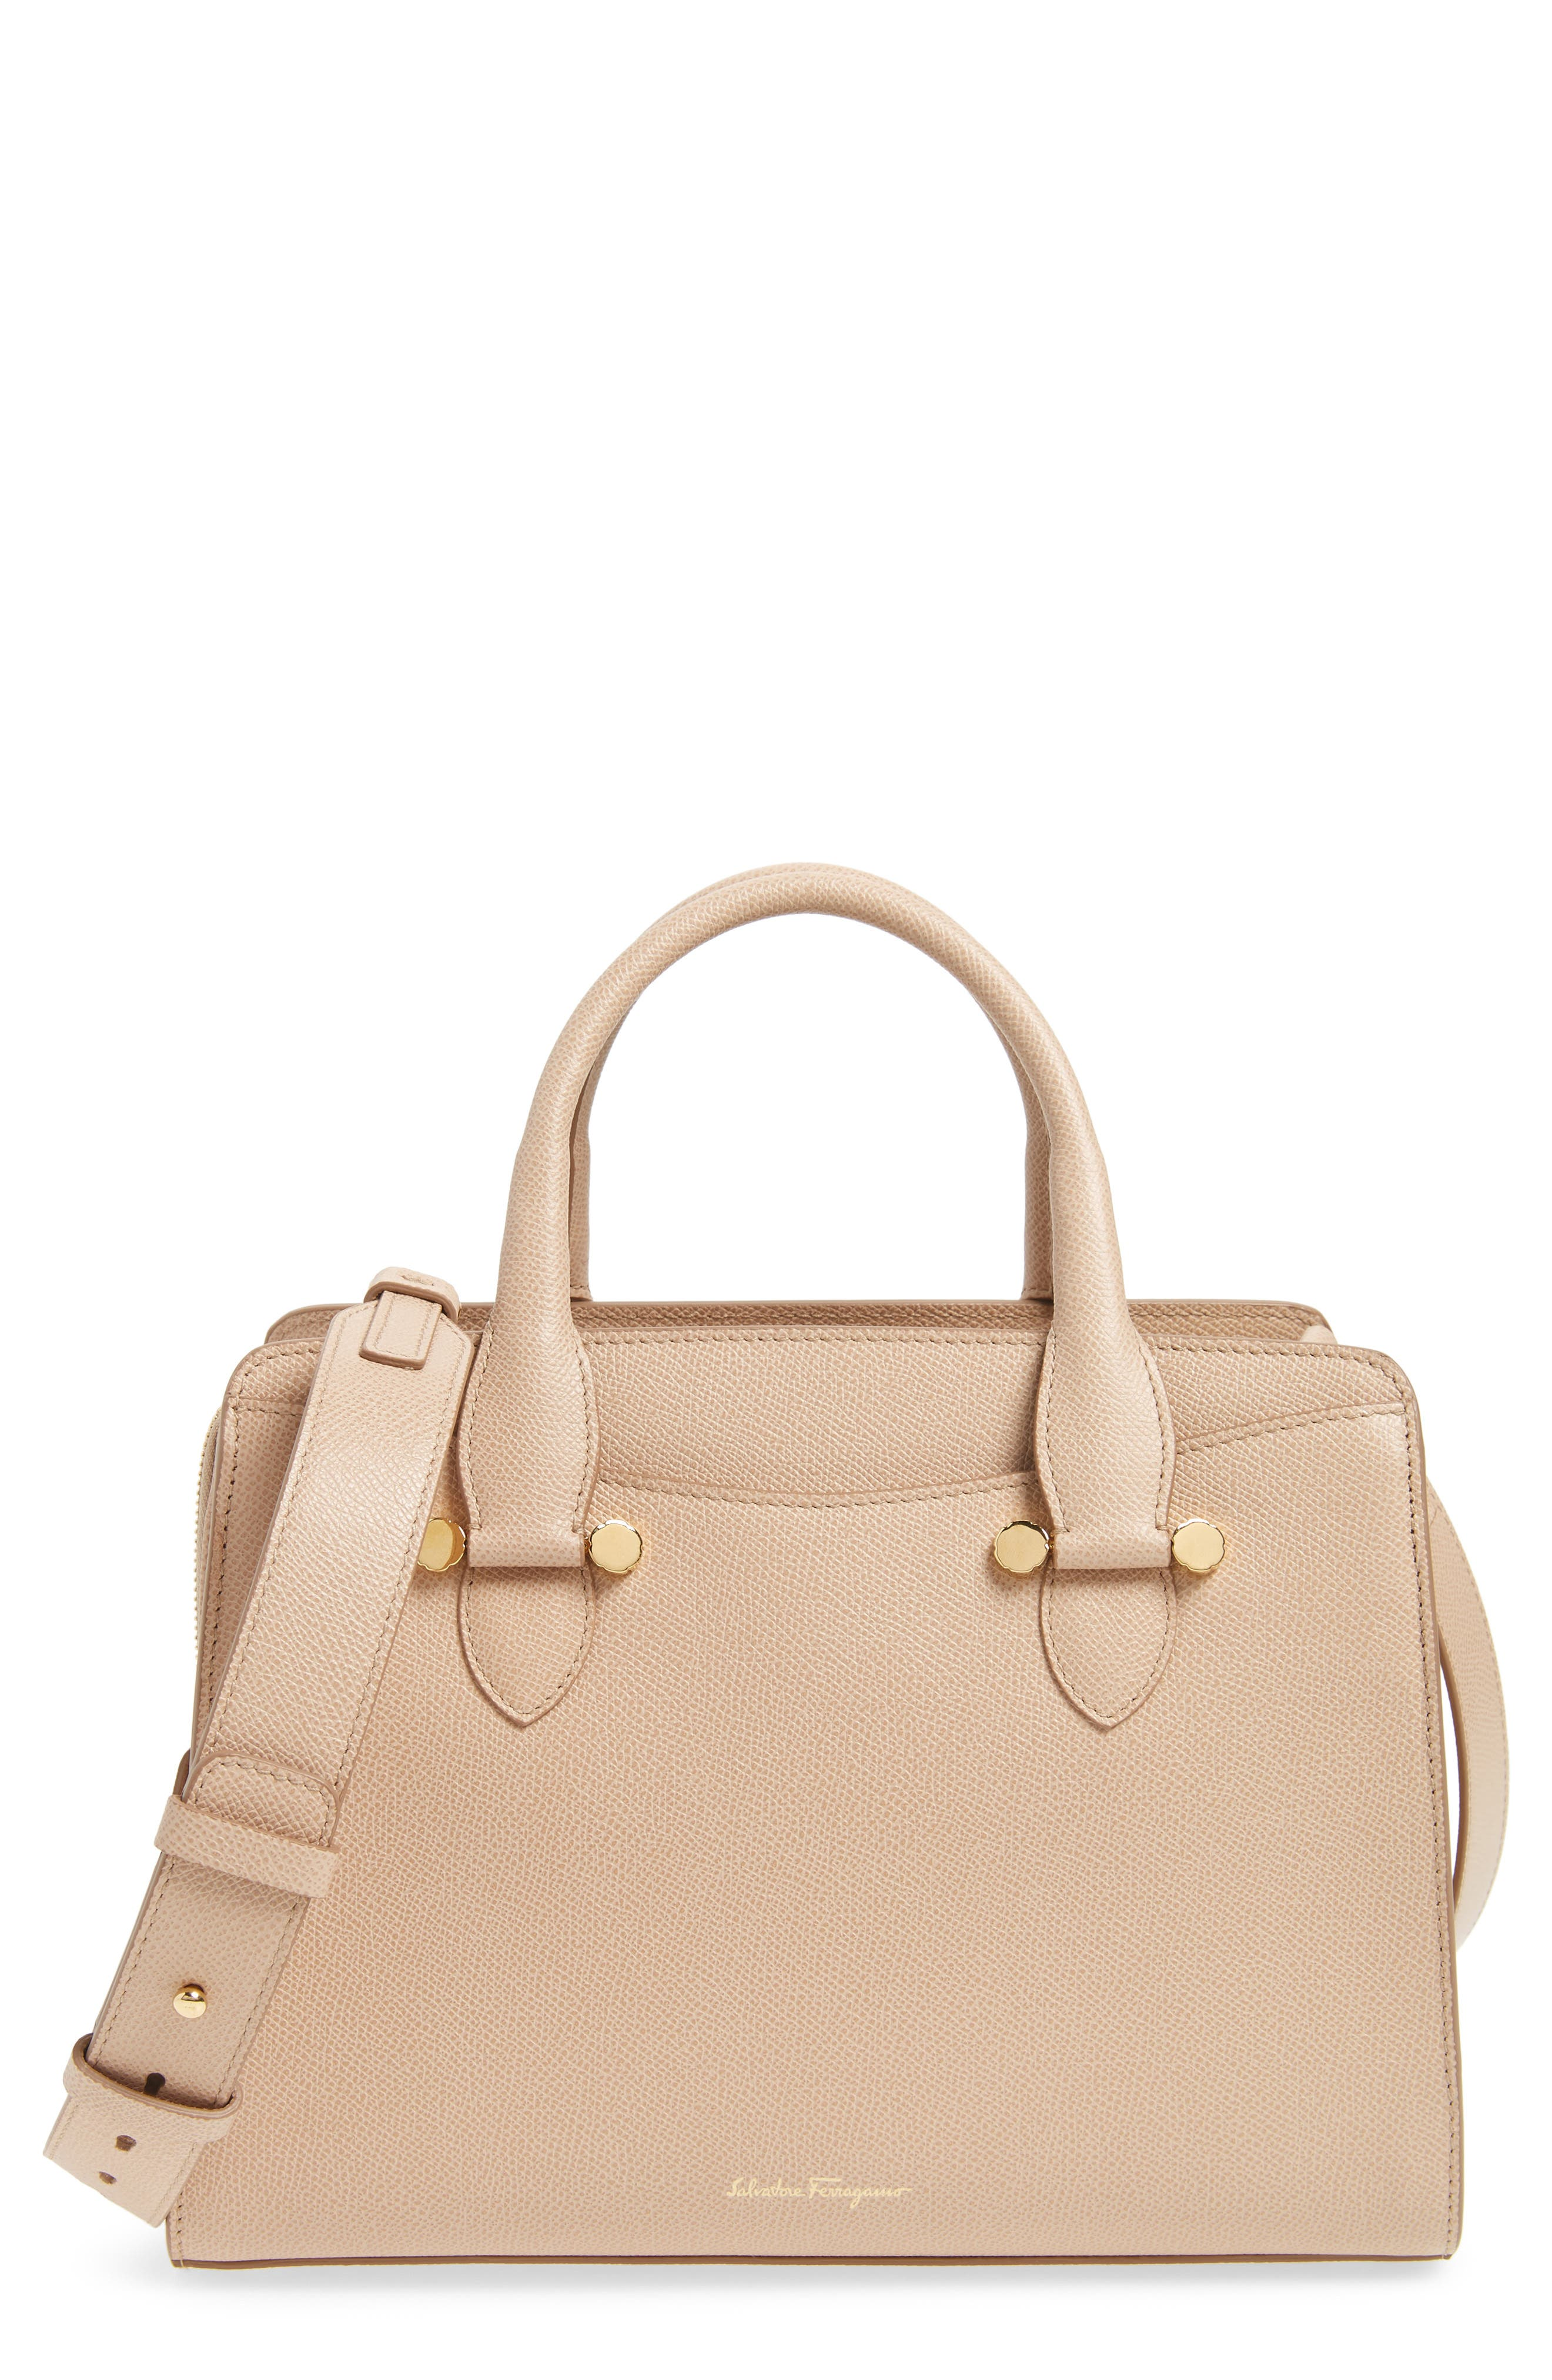 Small Today Leather Satchel,                         Main,                         color, Almond/ Sable